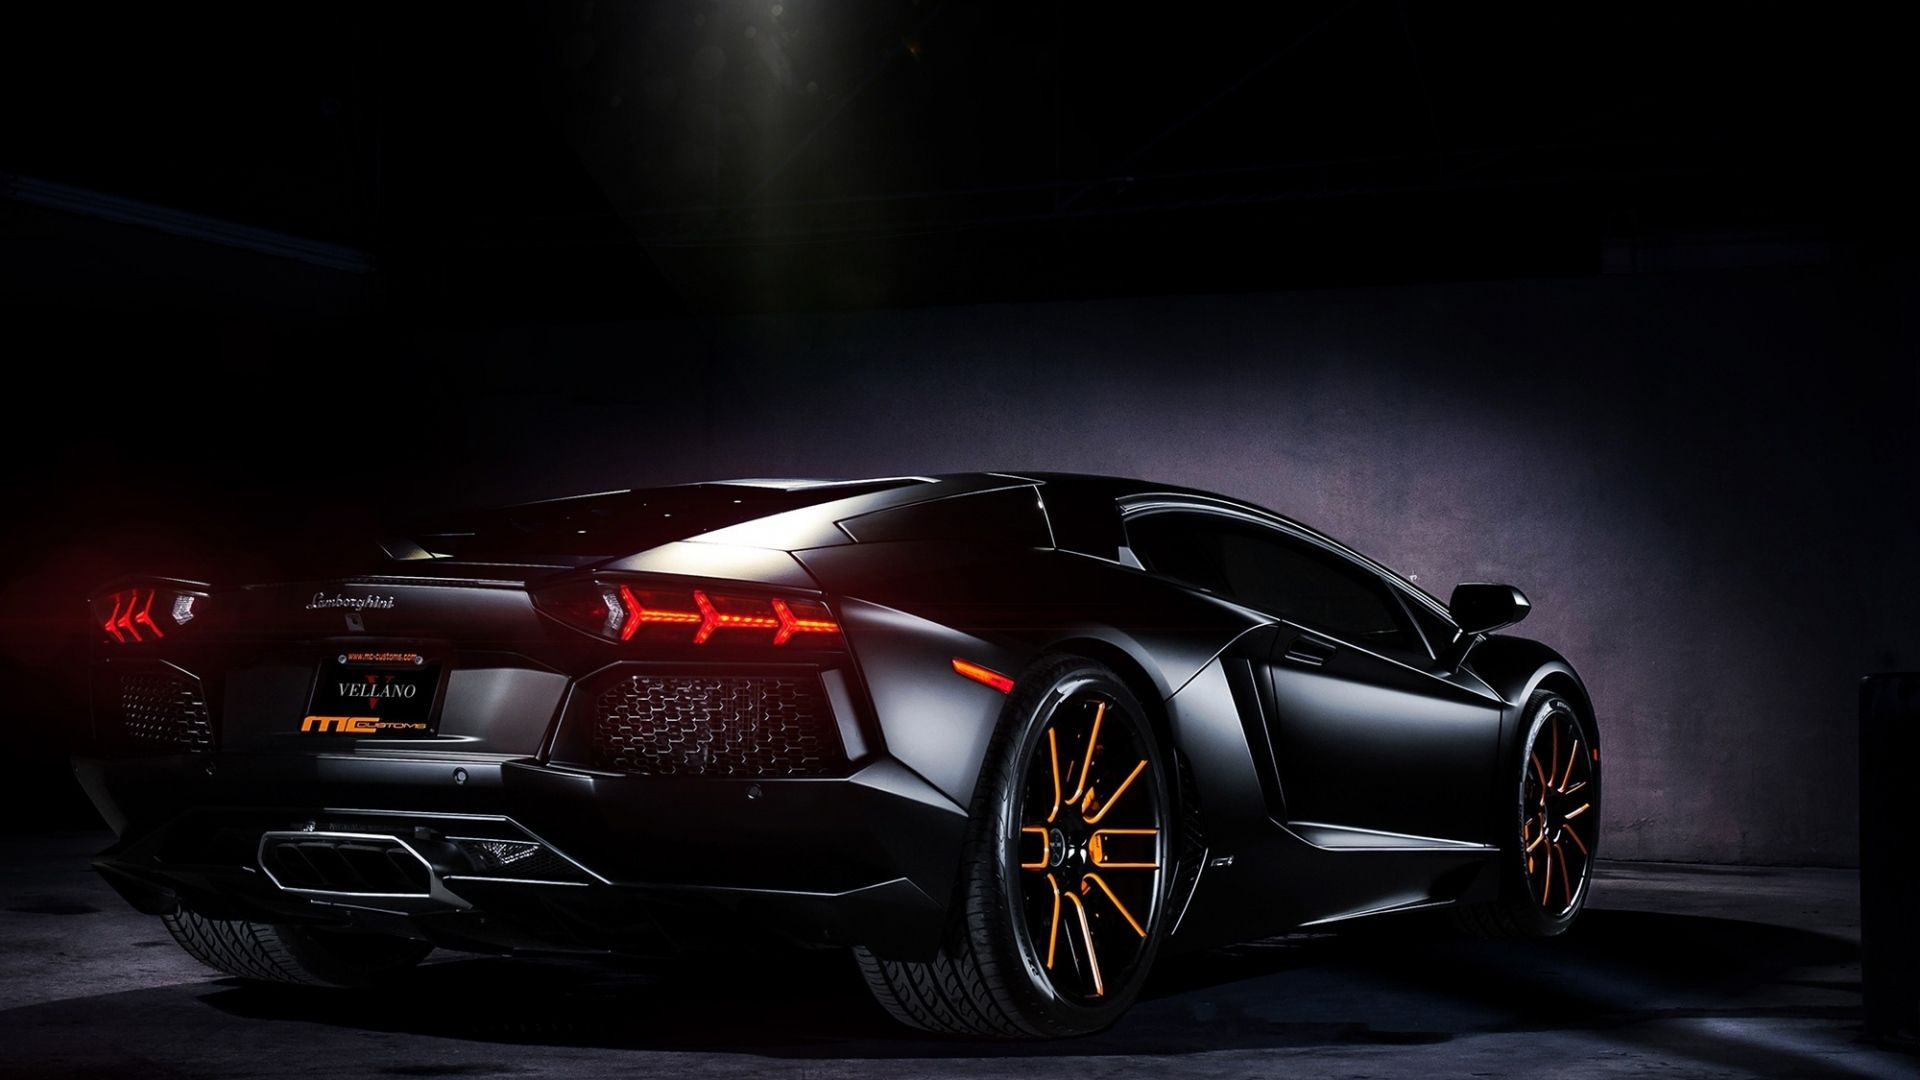 matte black lamborghini aventador on vellano wheels wallpaper available in various resolutions to suit your computer desktop iphone ipad android